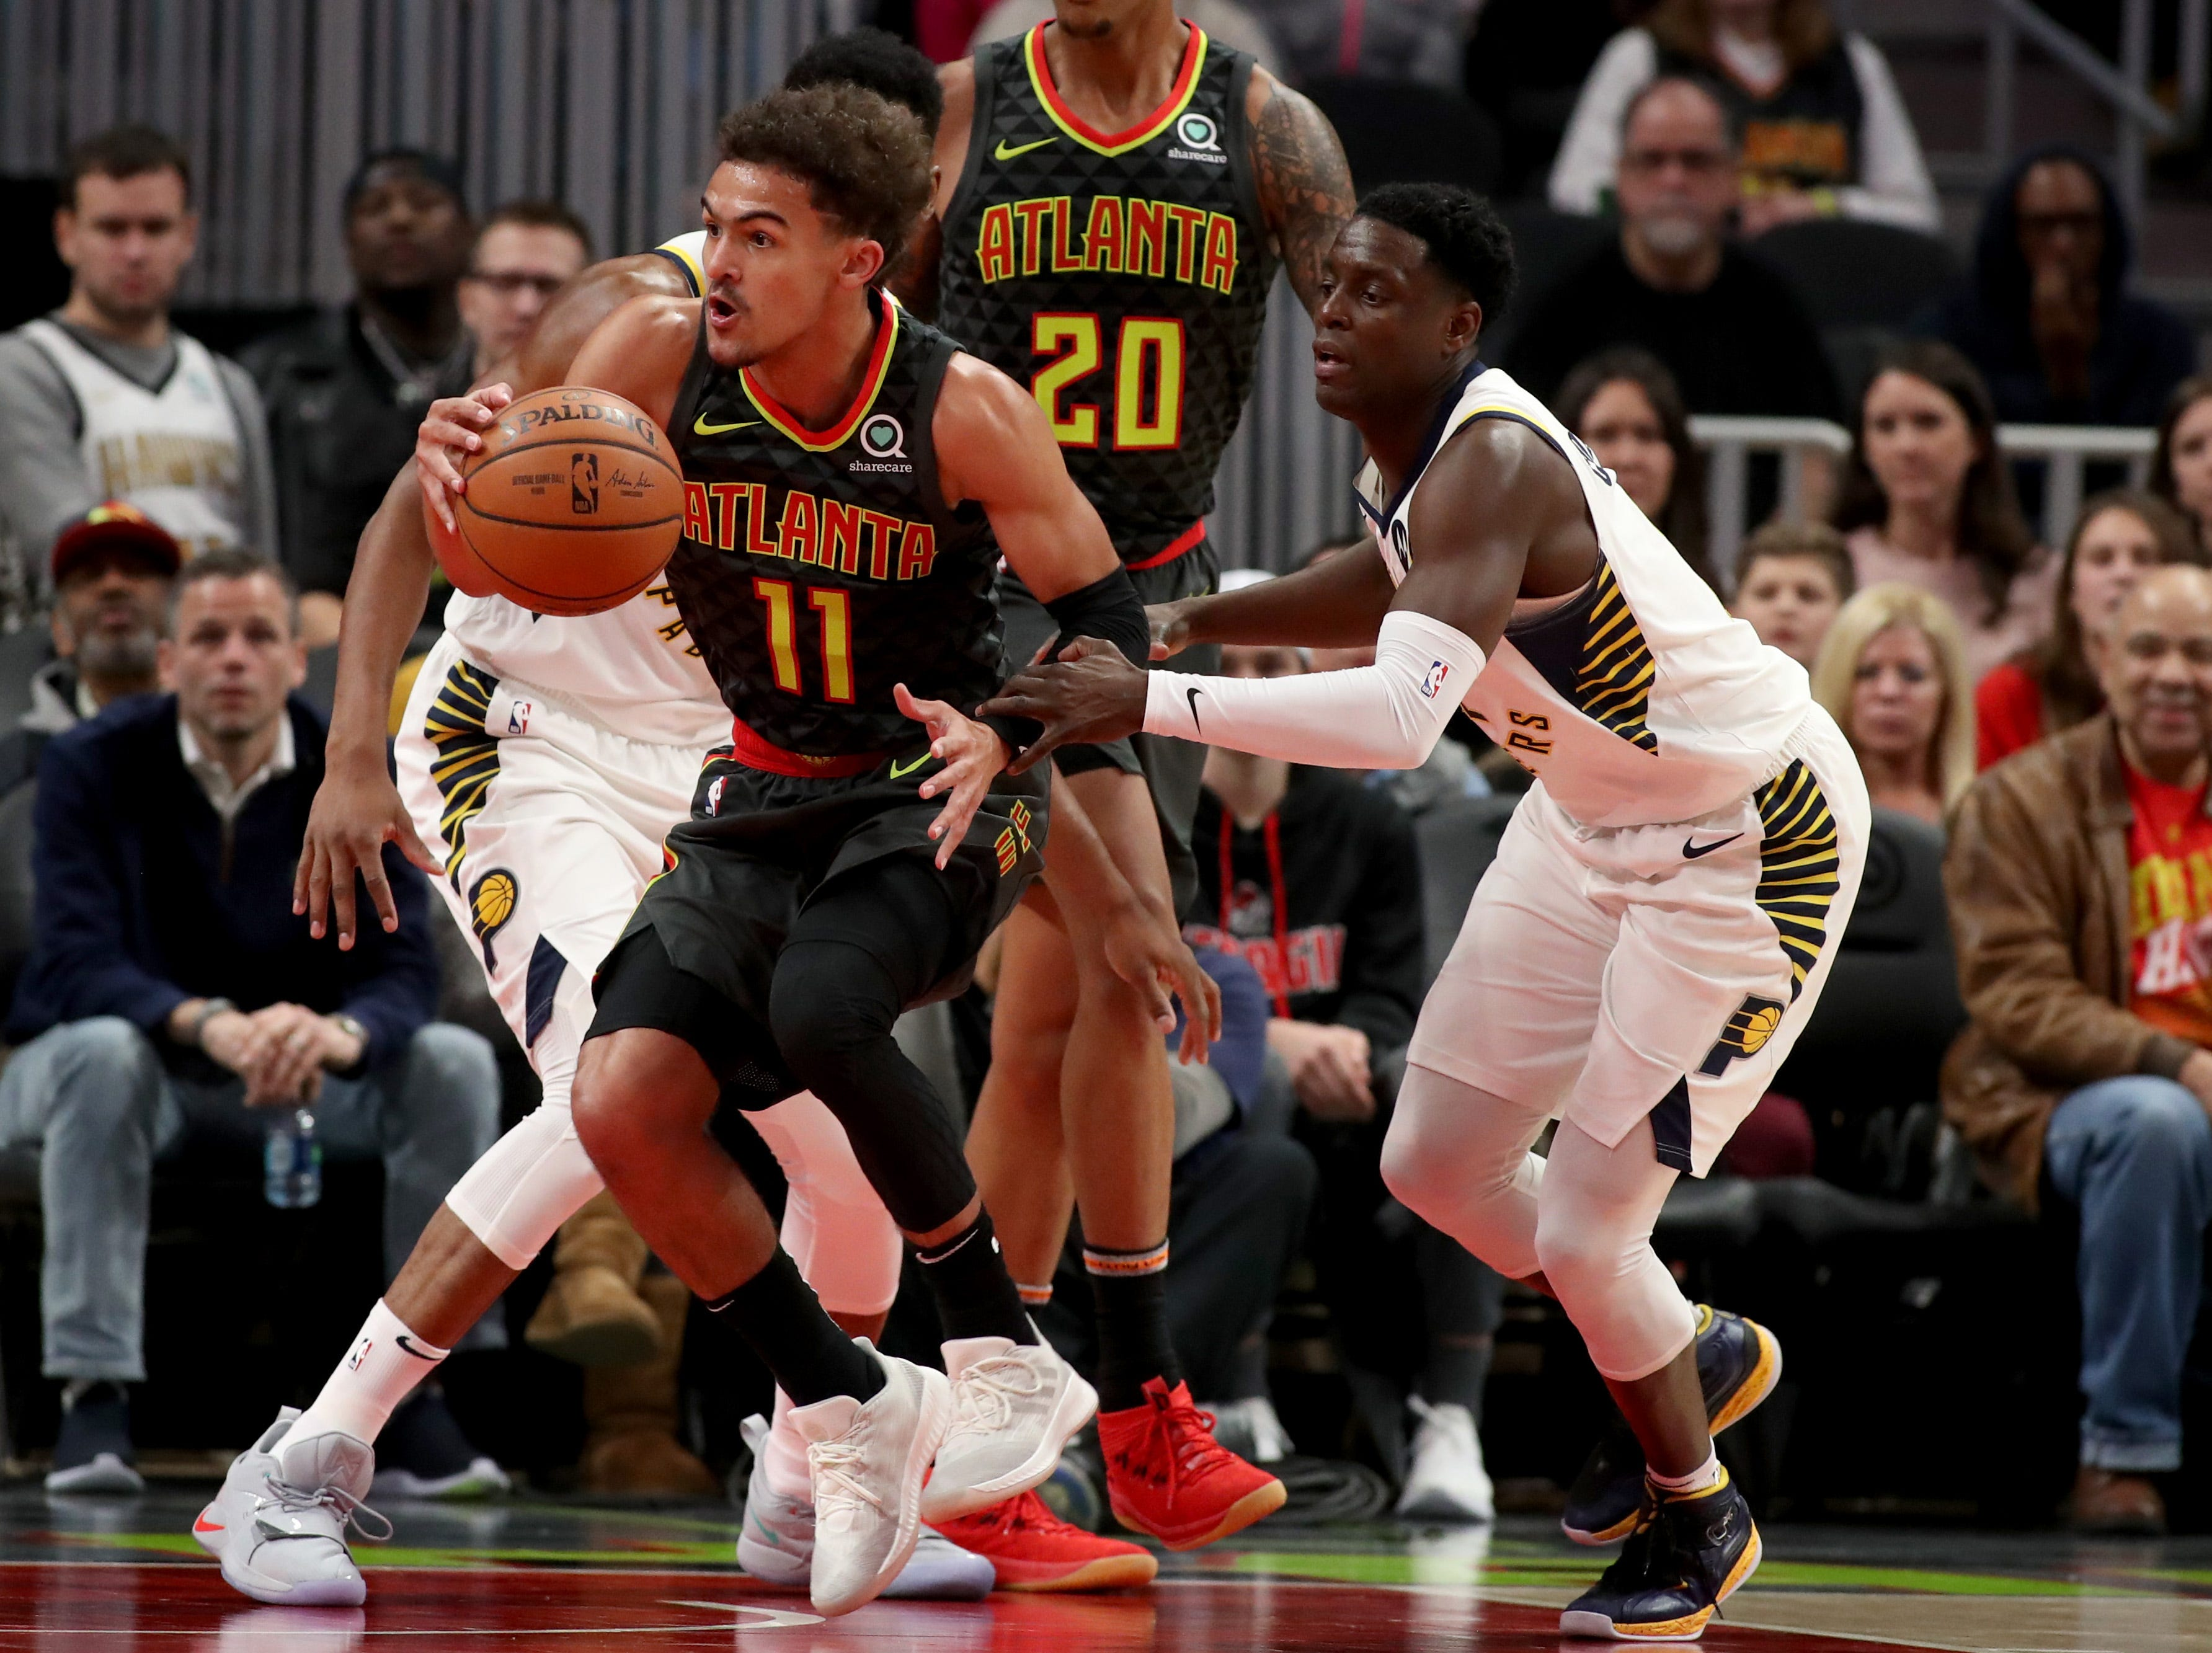 Dec 26, 2018; Atlanta, GA, USA; Atlanta Hawks guard Trae Young (11) drives against Indiana Pacers guard Darren Collison (2) in the first quarter at State Farm Arena. Mandatory Credit: Jason Getz-USA TODAY Sports